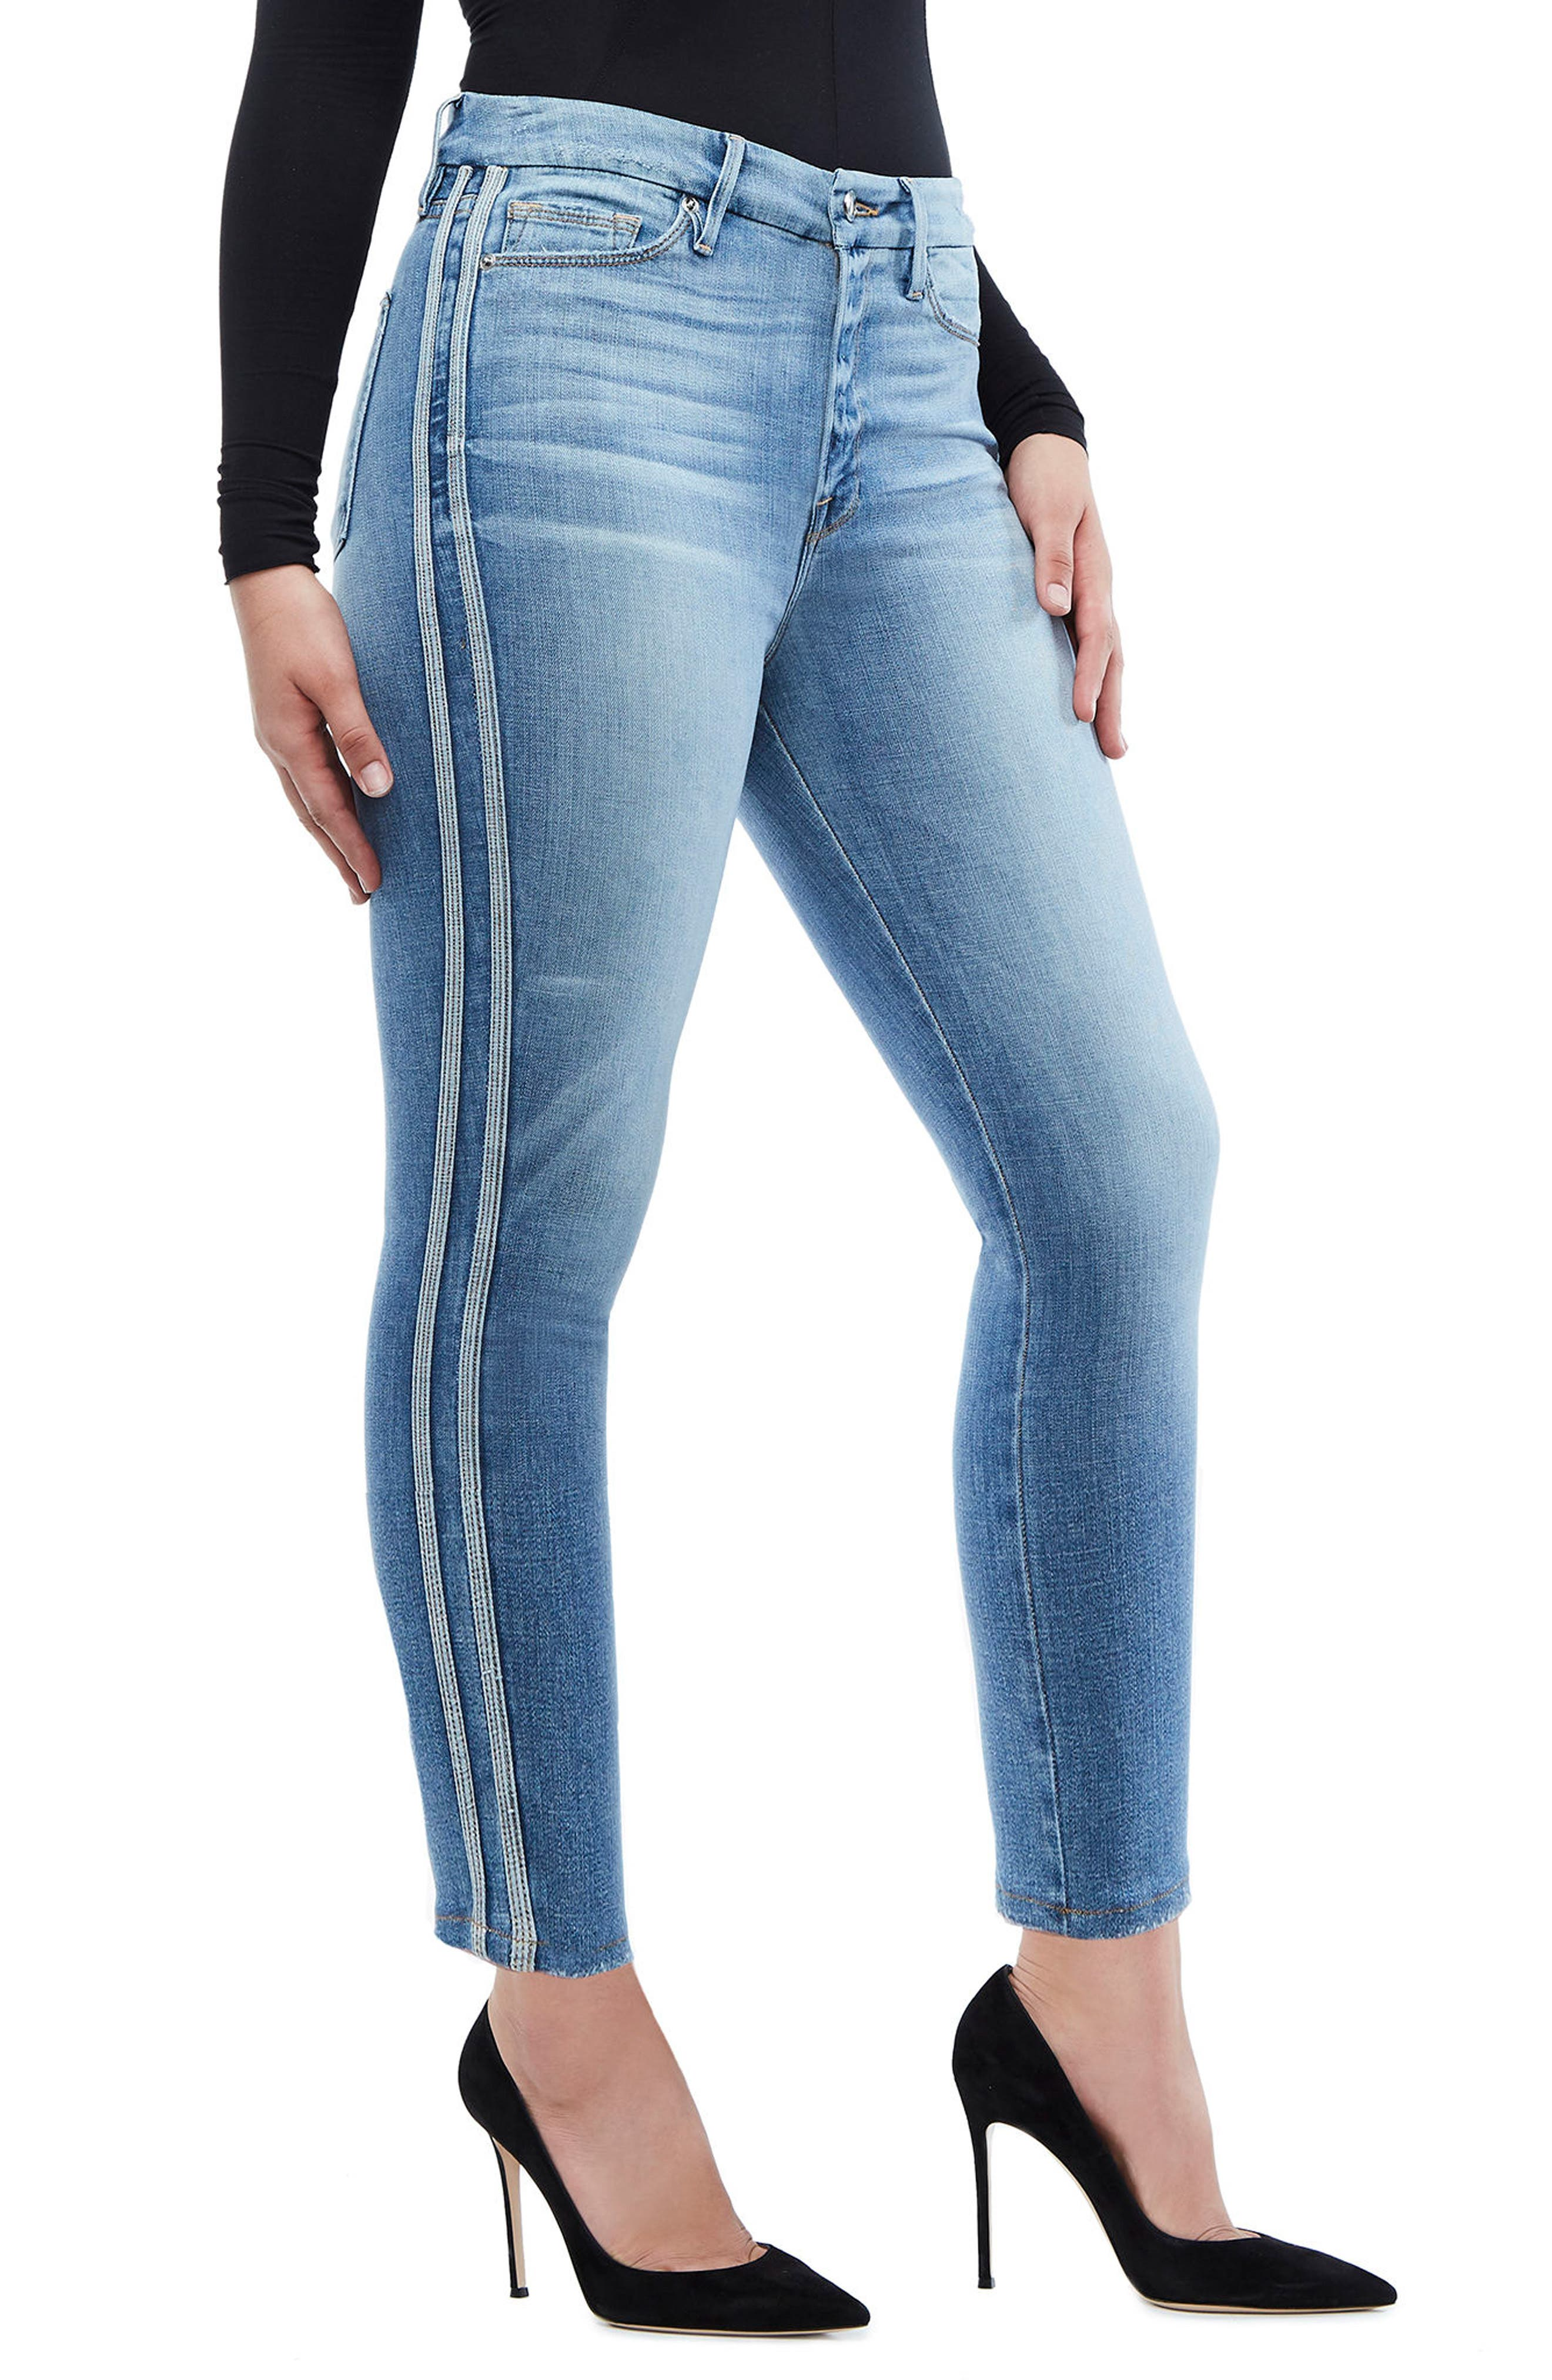 Main Image - Good American Good Waist Athletic Stripe High Waist Ankle Straight Leg Jeans (Blue 121) (Regular & Plus Size)